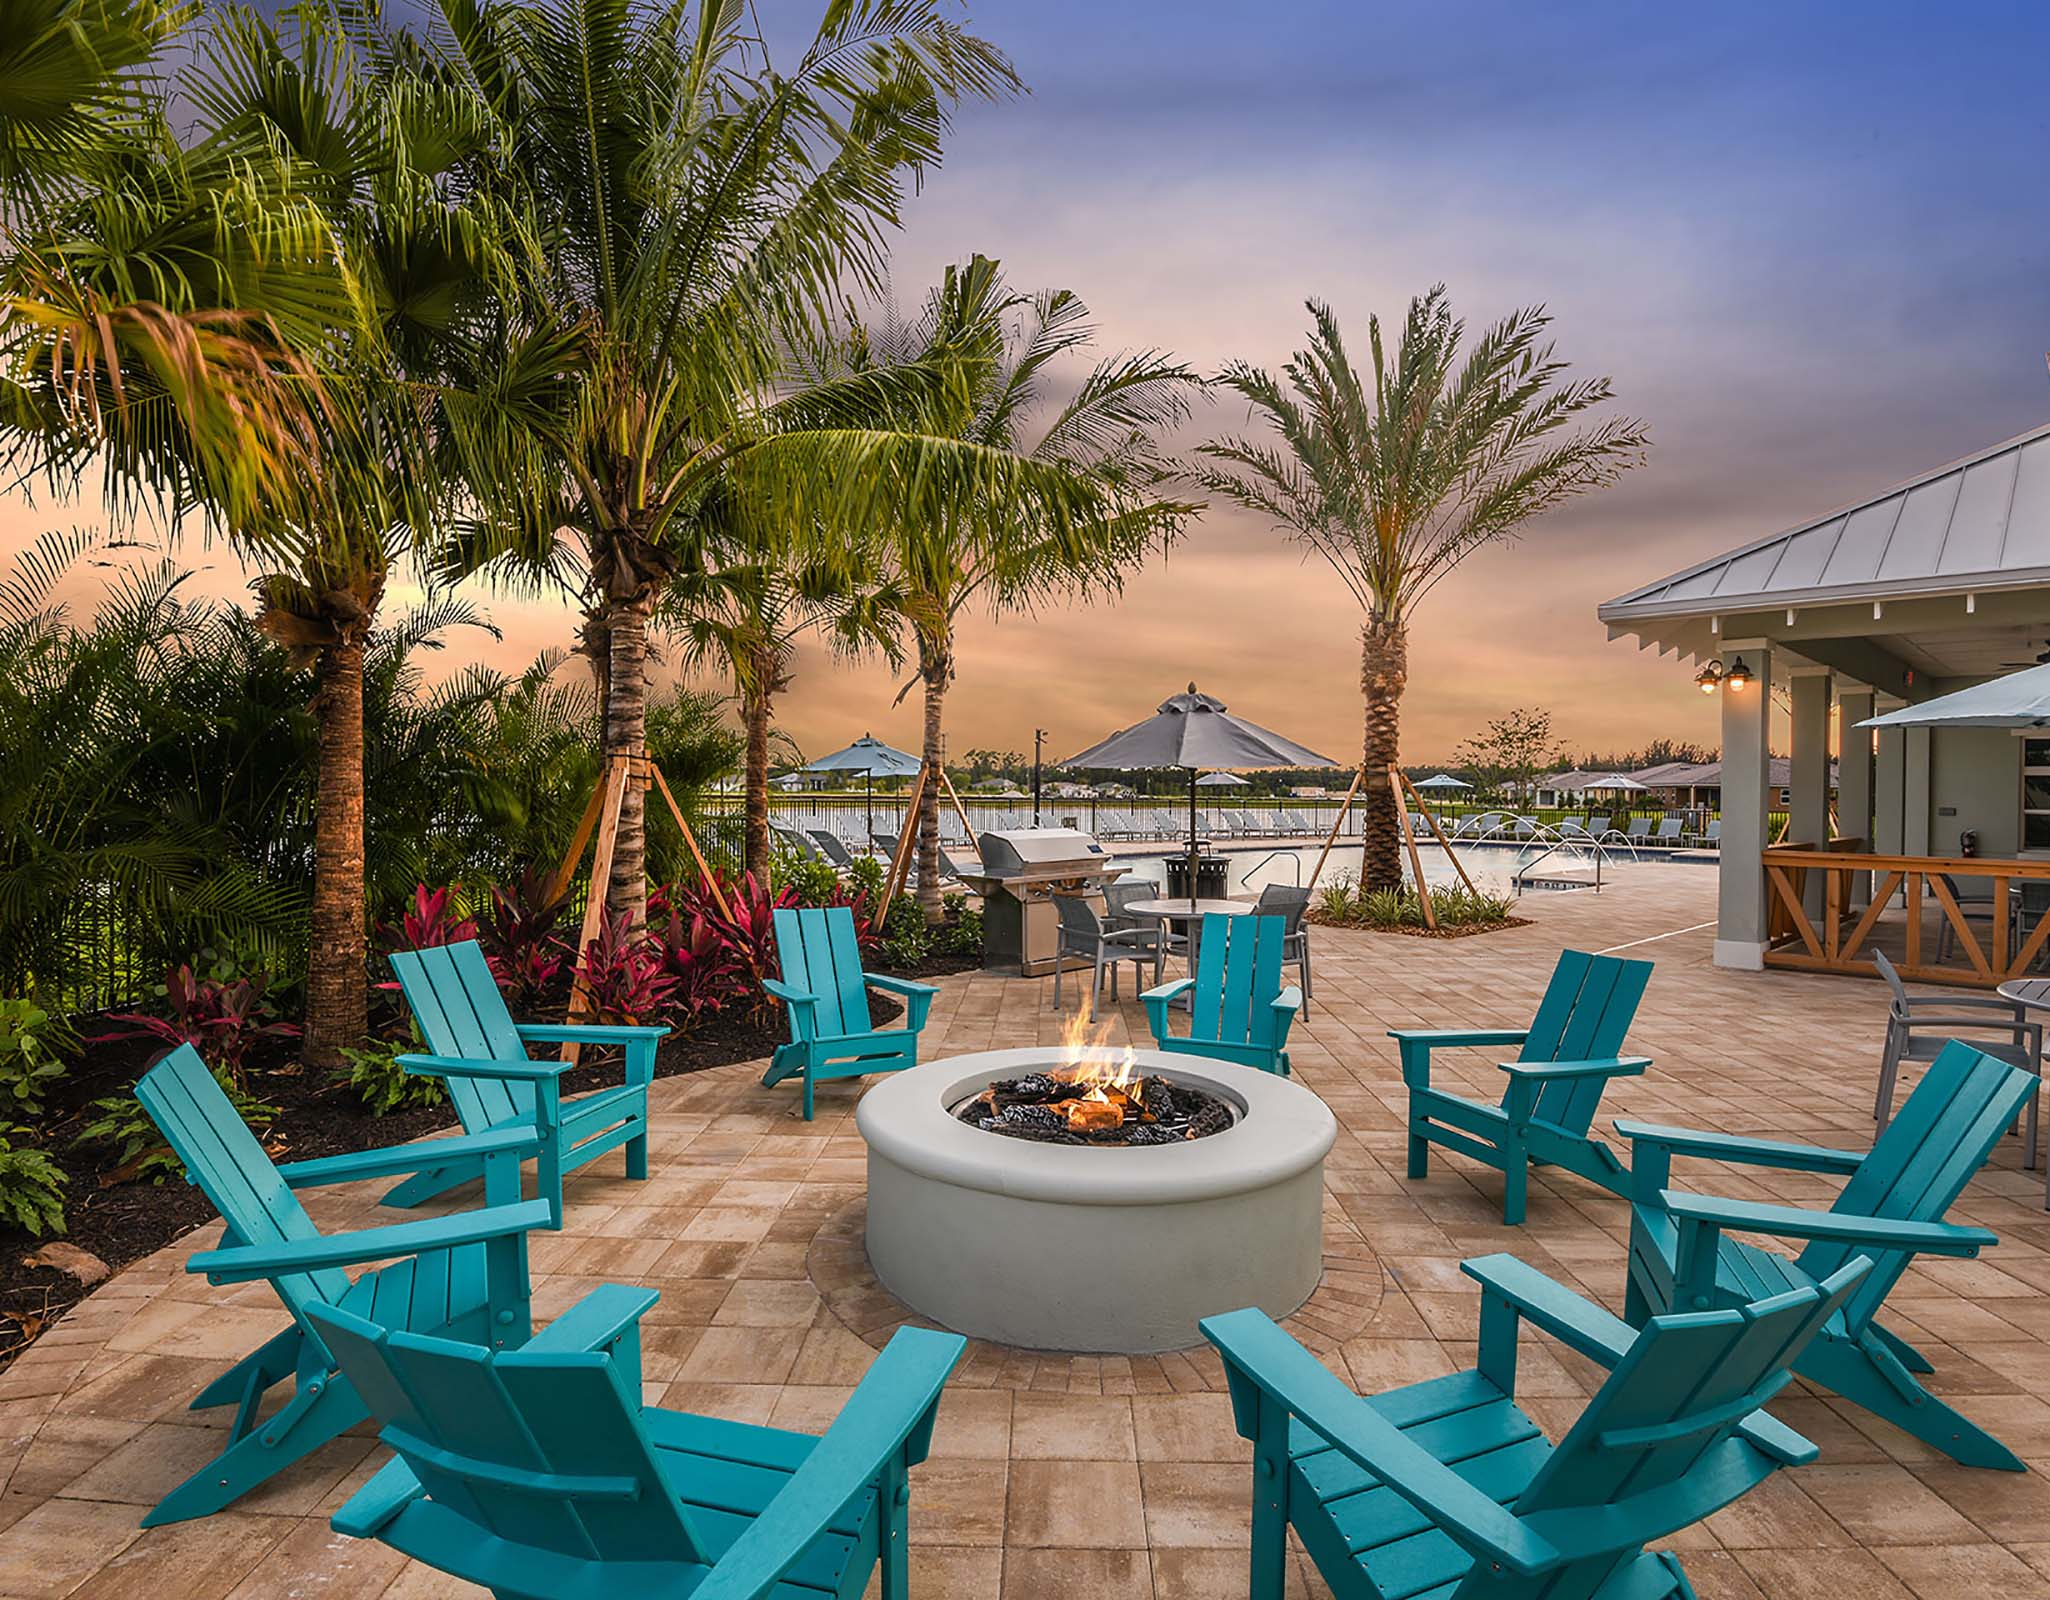 Bonavie Cove Amenities in Fort Myers Florida by Mattamy Homes